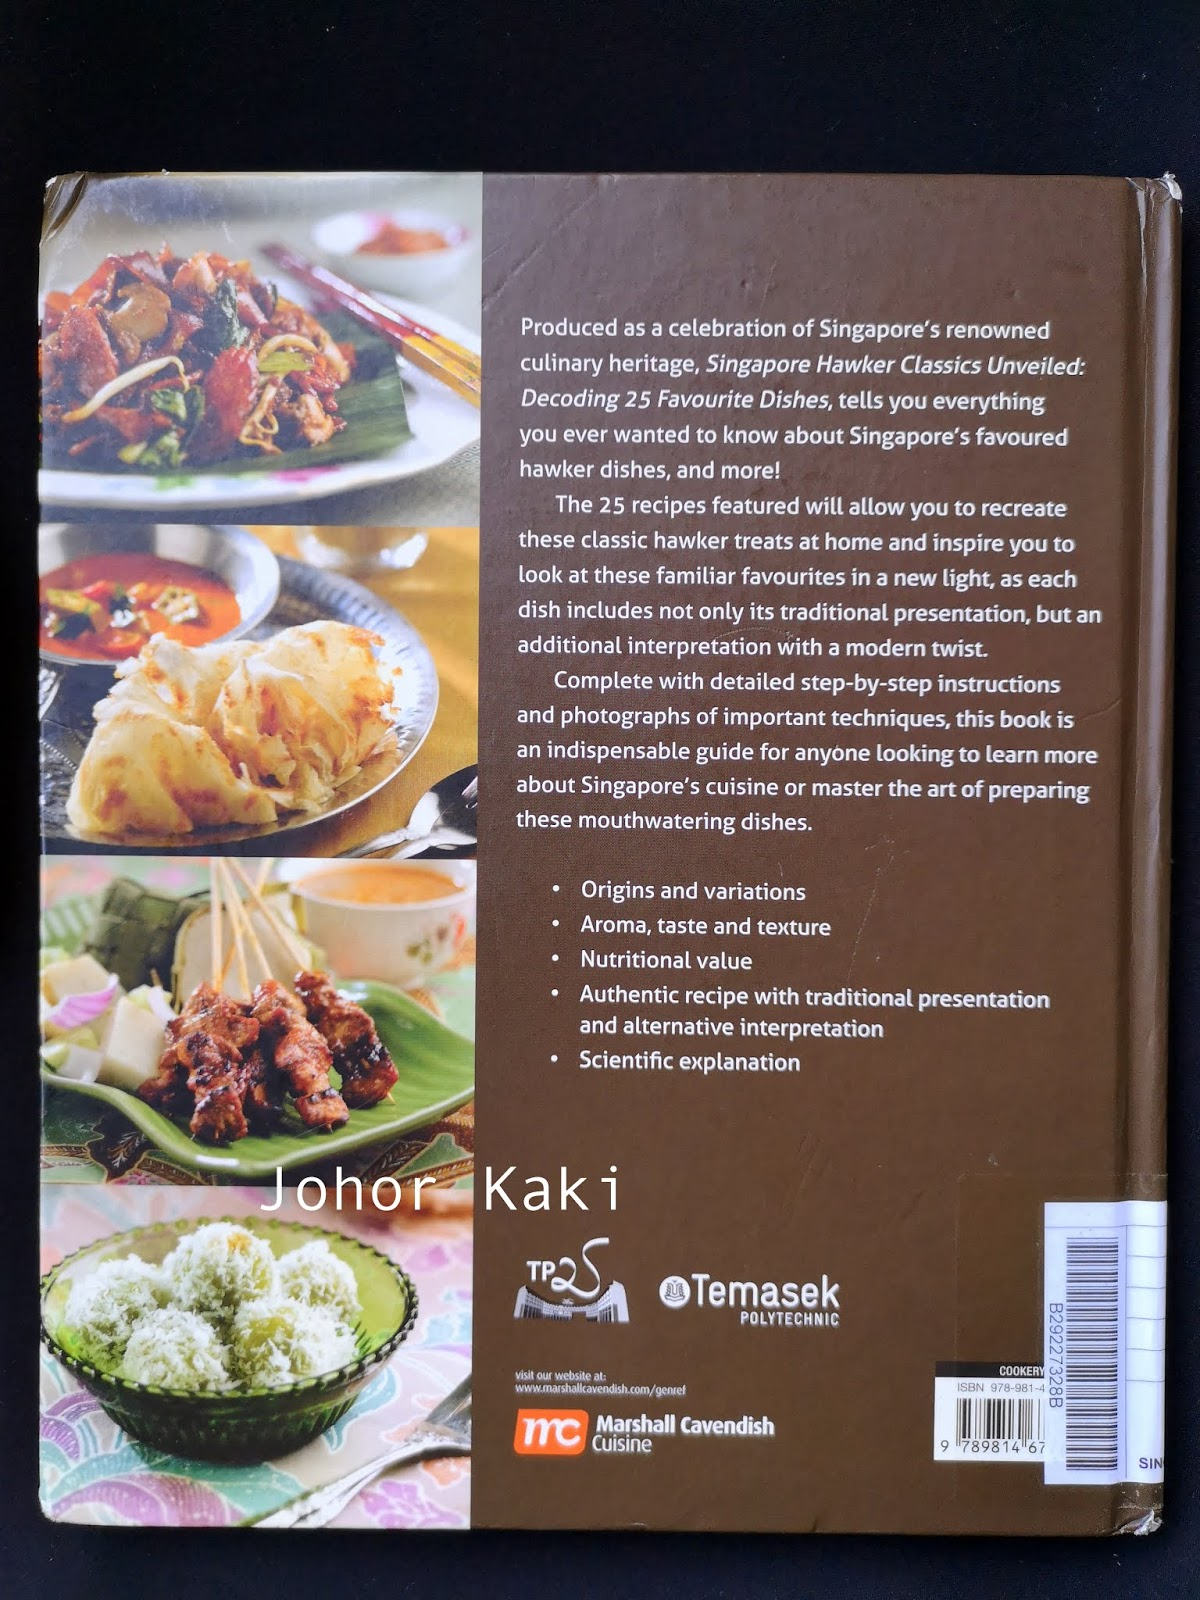 Singapore hawker classics unveiled books i read johor kaki travels to whom do i recommend this book forumfinder Images